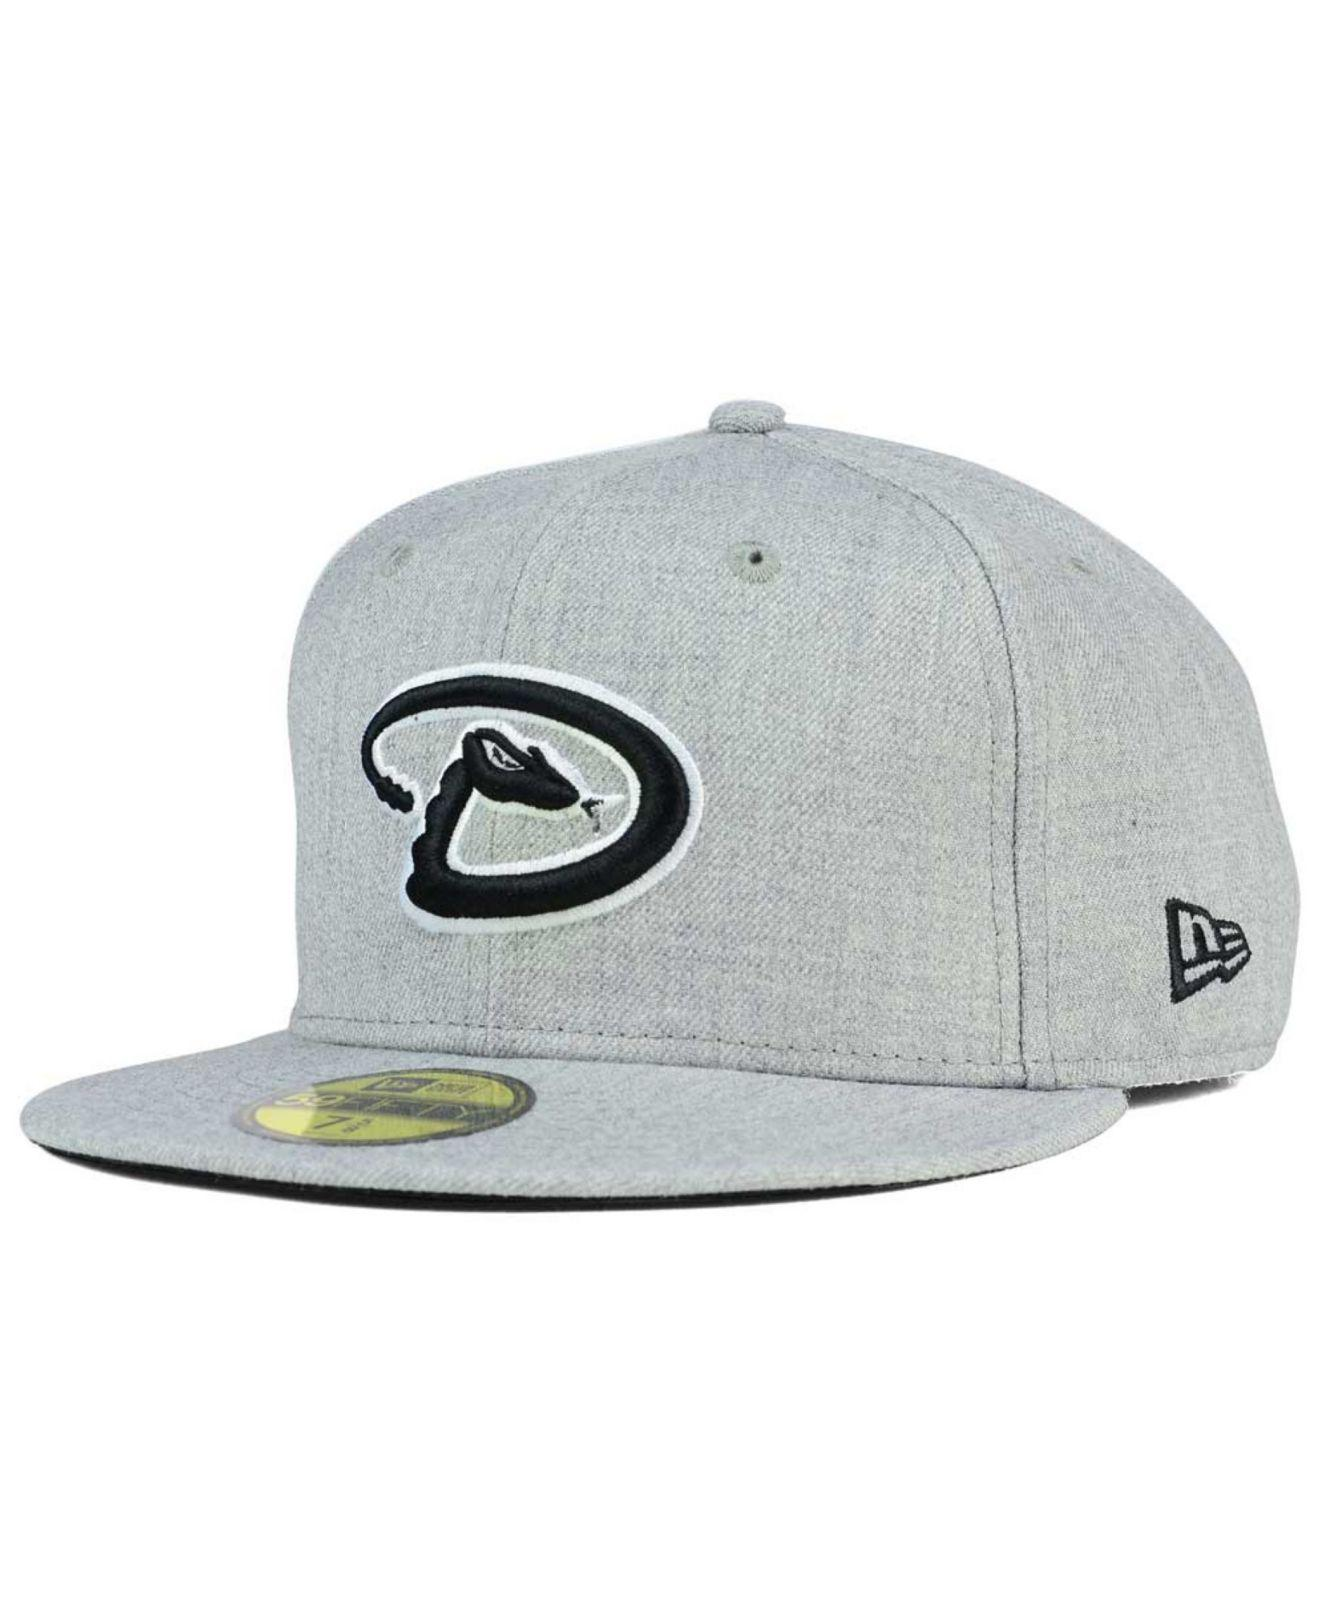 official photos 86a7c e72b8 KTZ. Men s Gray Arizona Diamondbacks Heather Black White 59fifty Cap